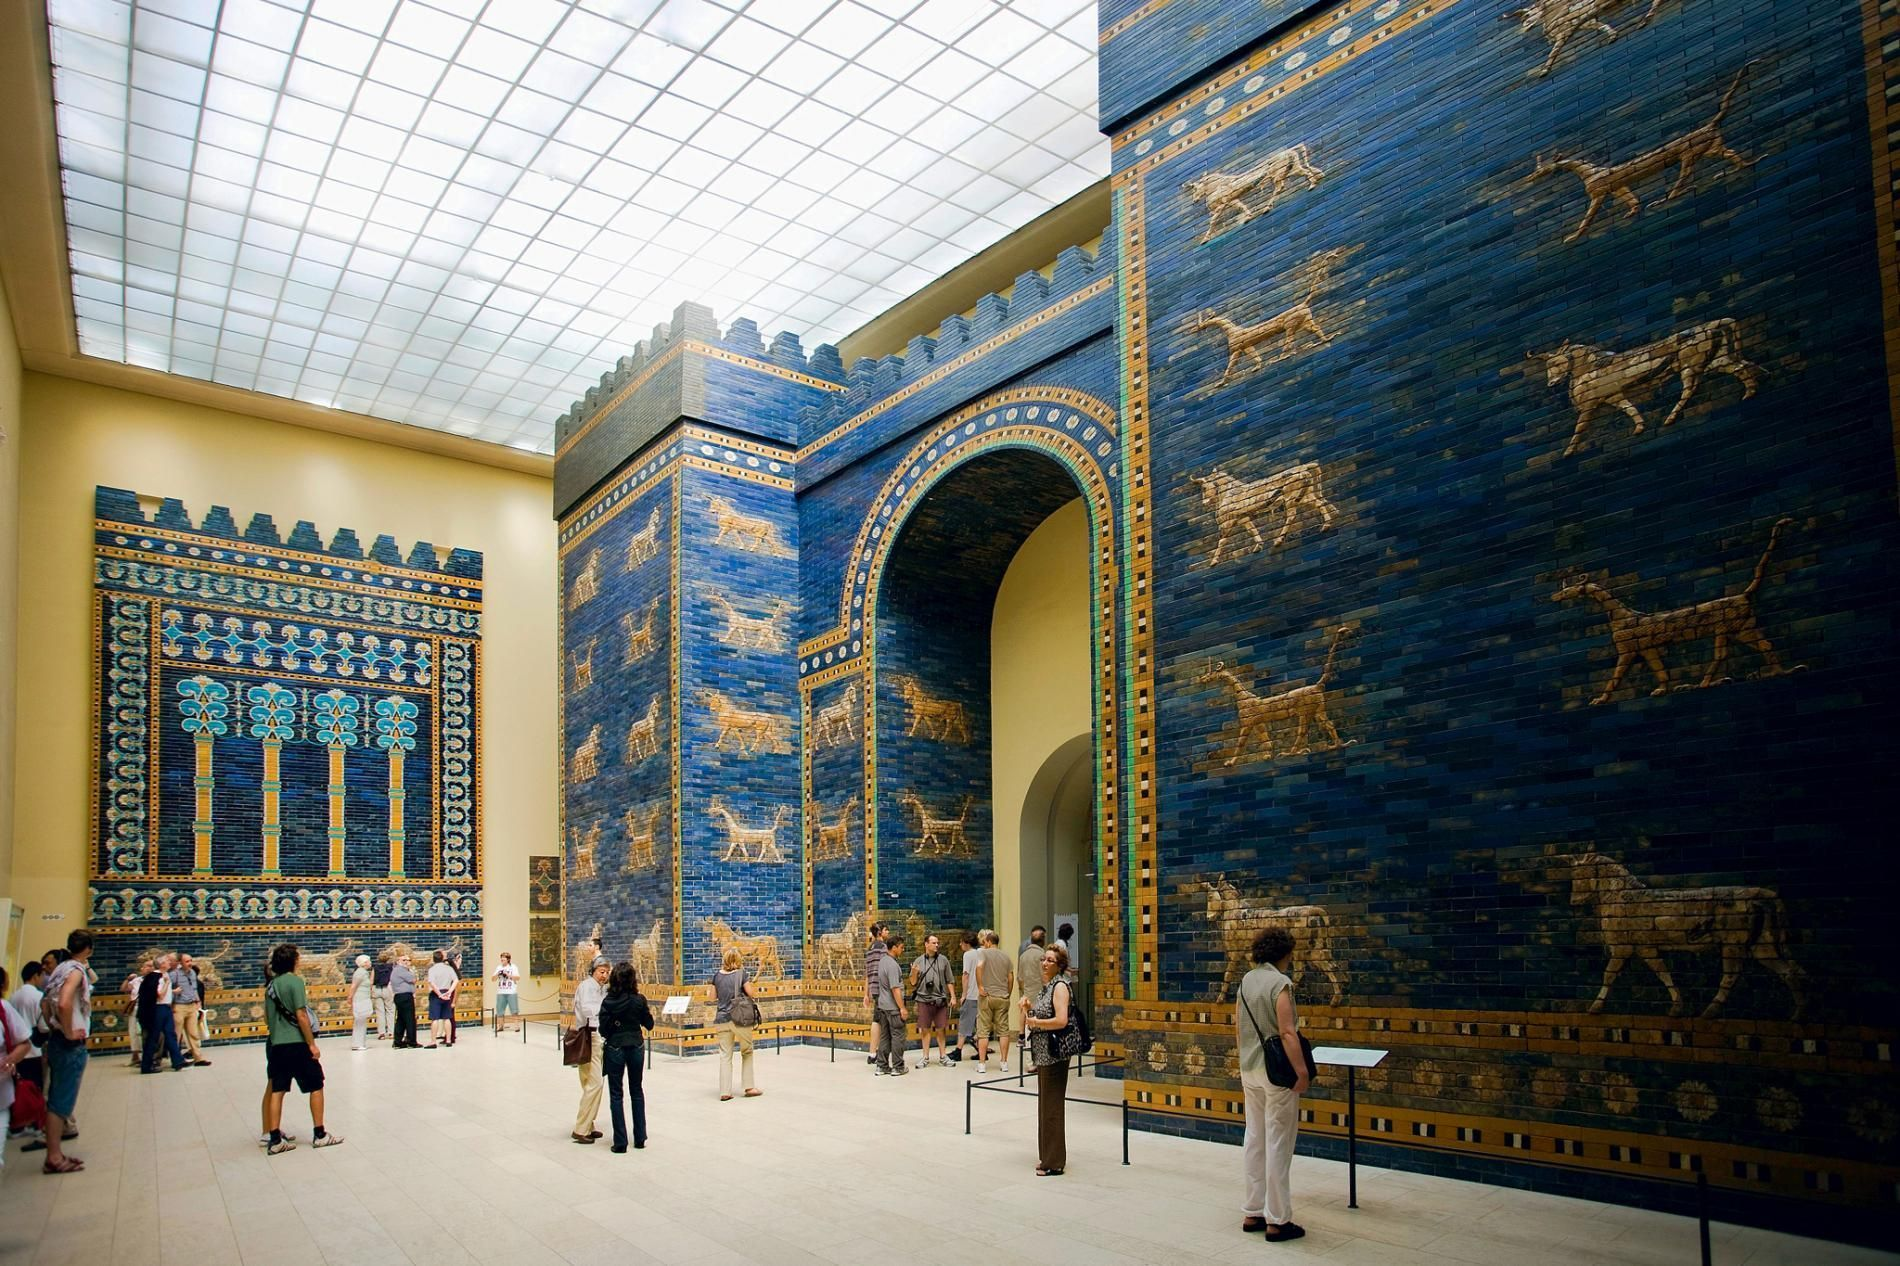 The Reconstructed Ishtar Gate Displayed At The Pergamon Museum In Berlin Incorporates Fragments From The Gatew Pergamon Museum Babylon Pergamon Museum Berlin